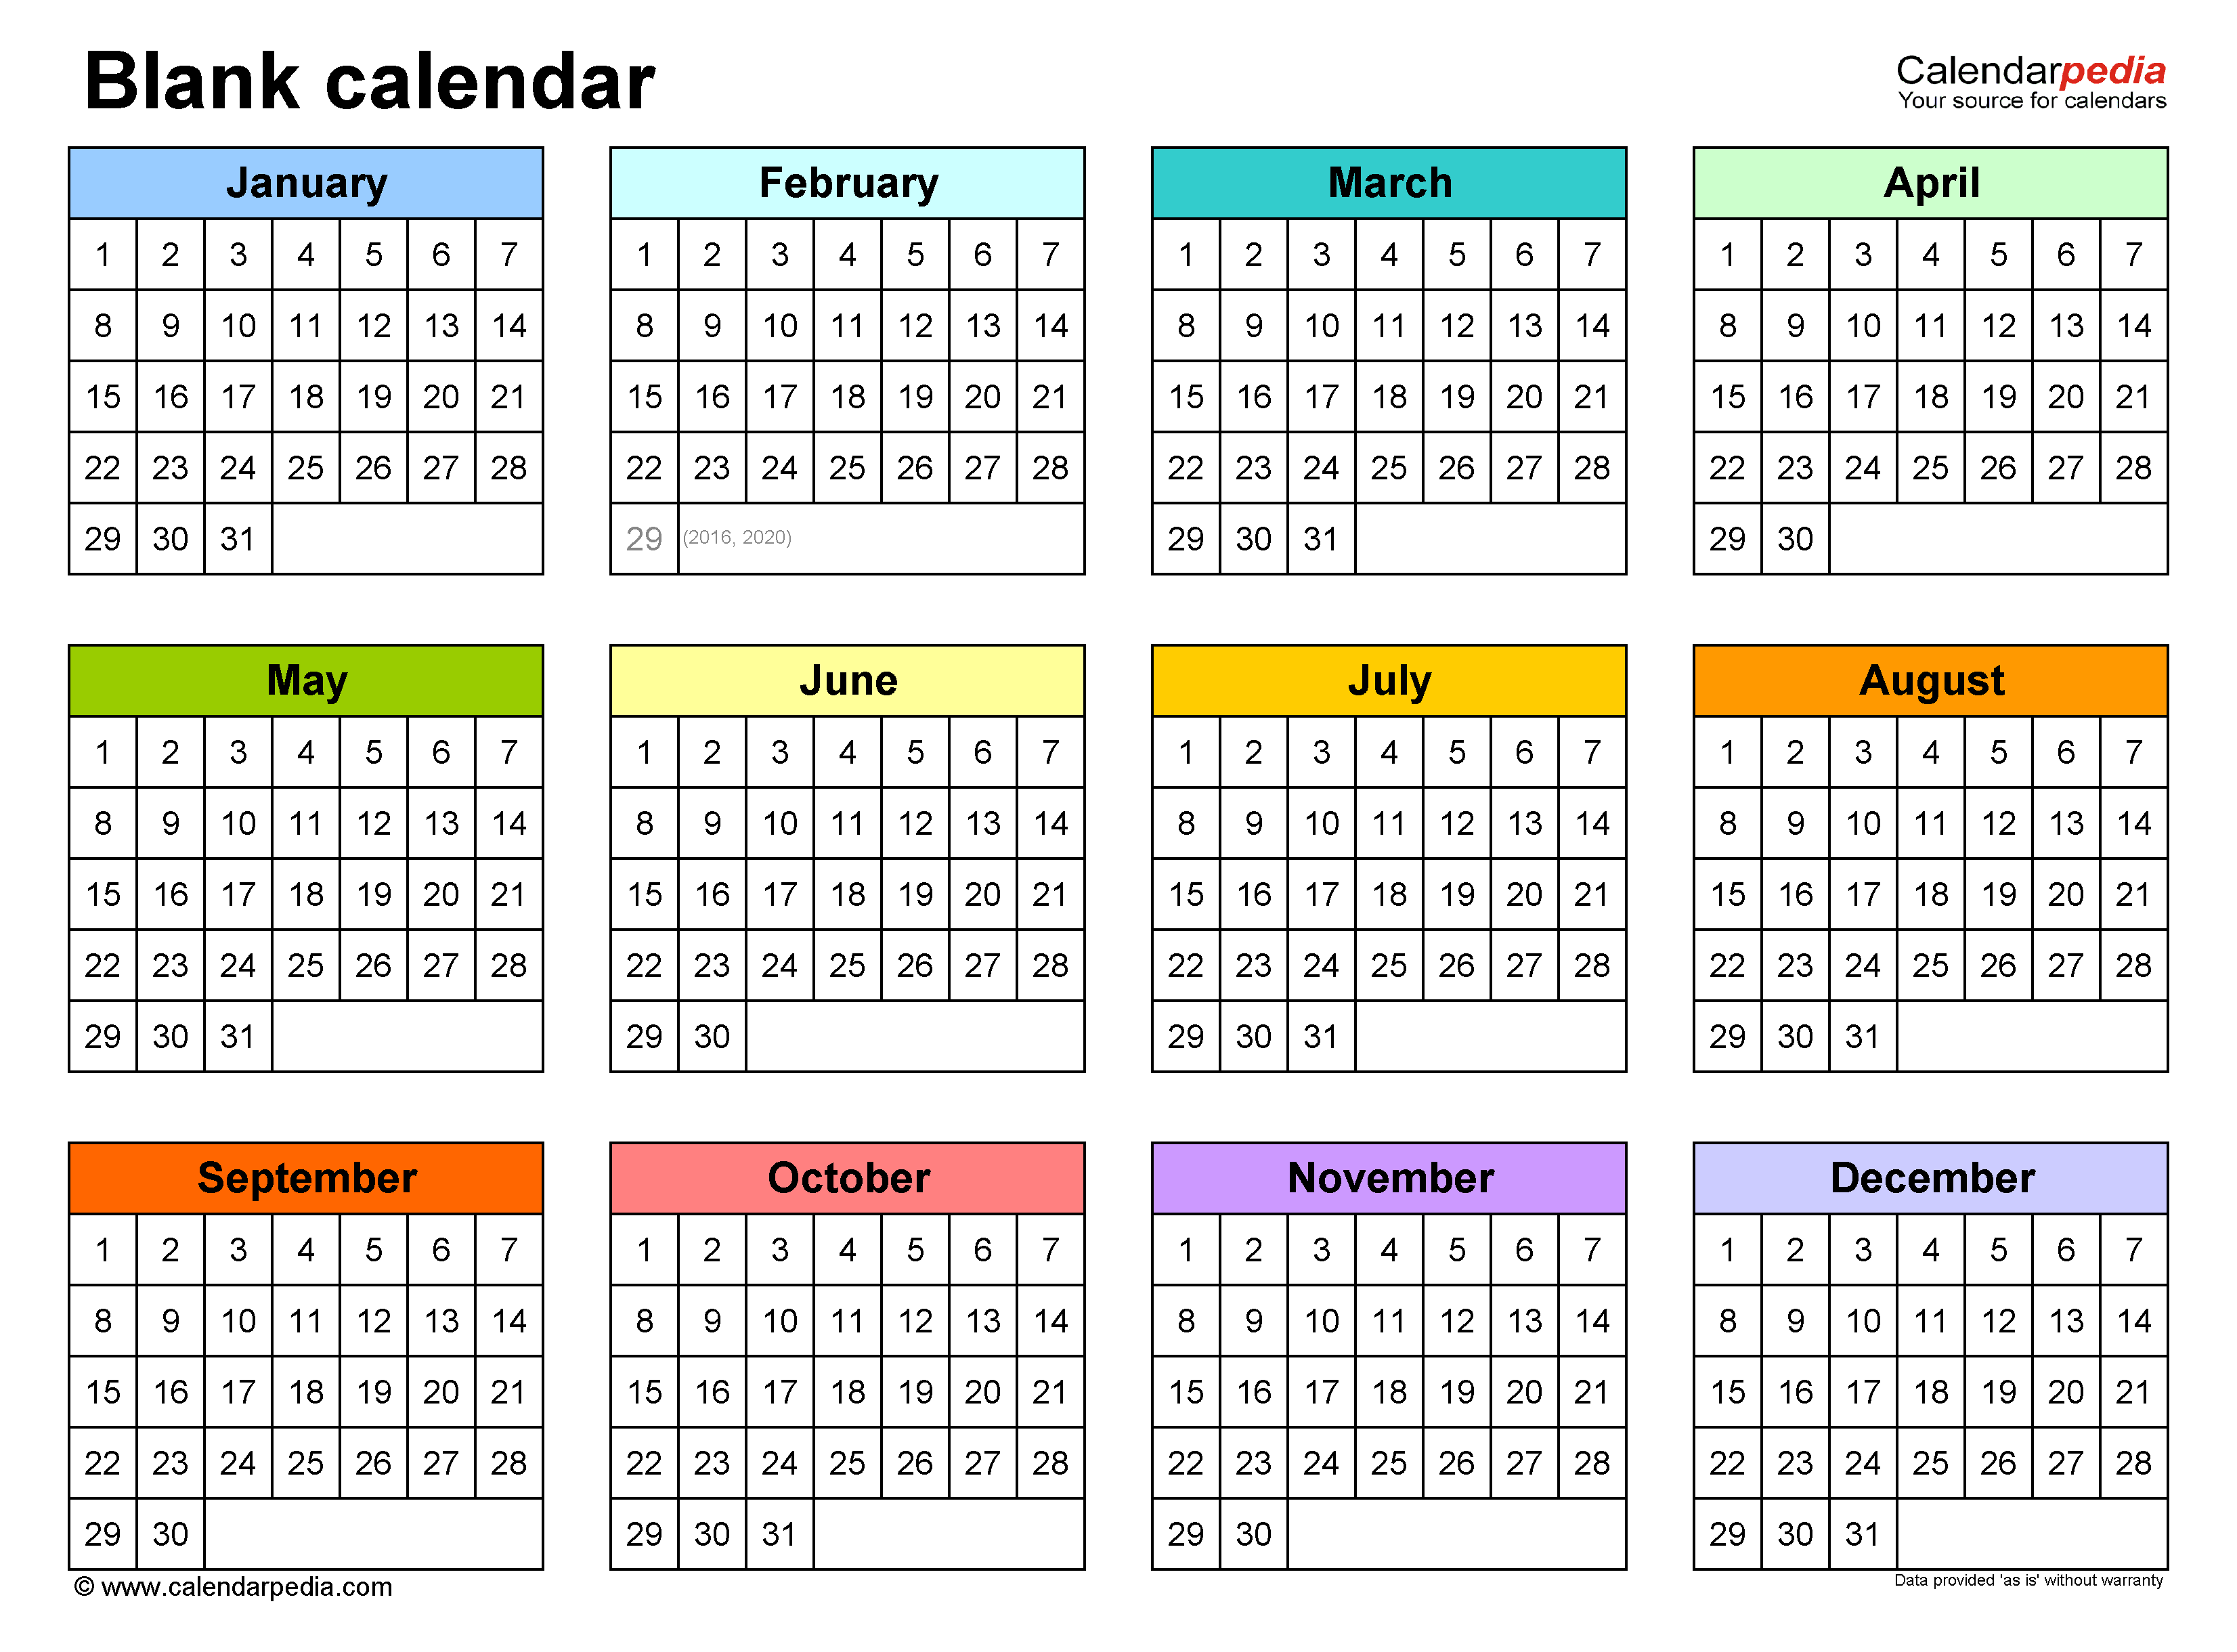 Blank Monthly Calendar Template Word from www.calendarpedia.com